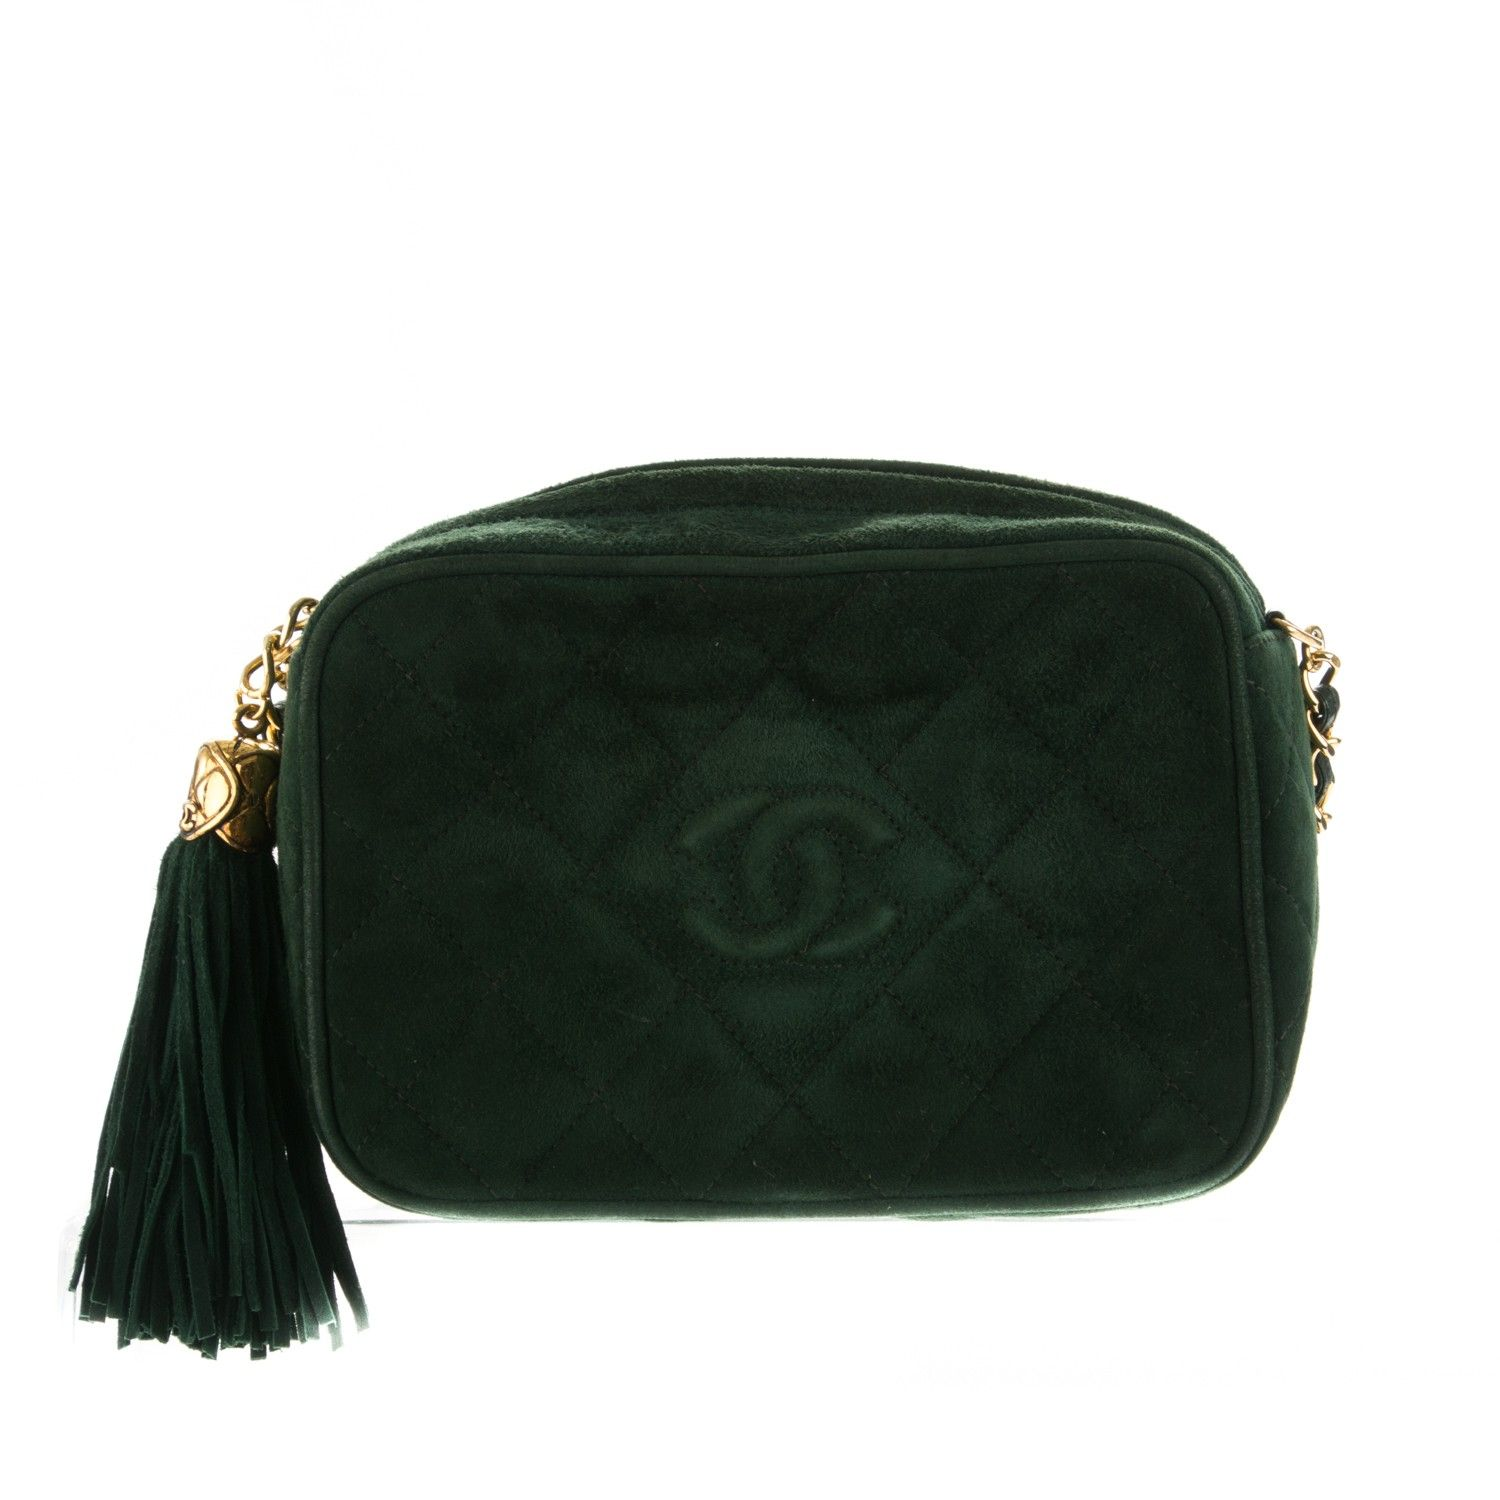 f7f912558498 This is an authentic CHANEL Vintage Suede Quilted CC Tassel Camera Case in  Dark Green.